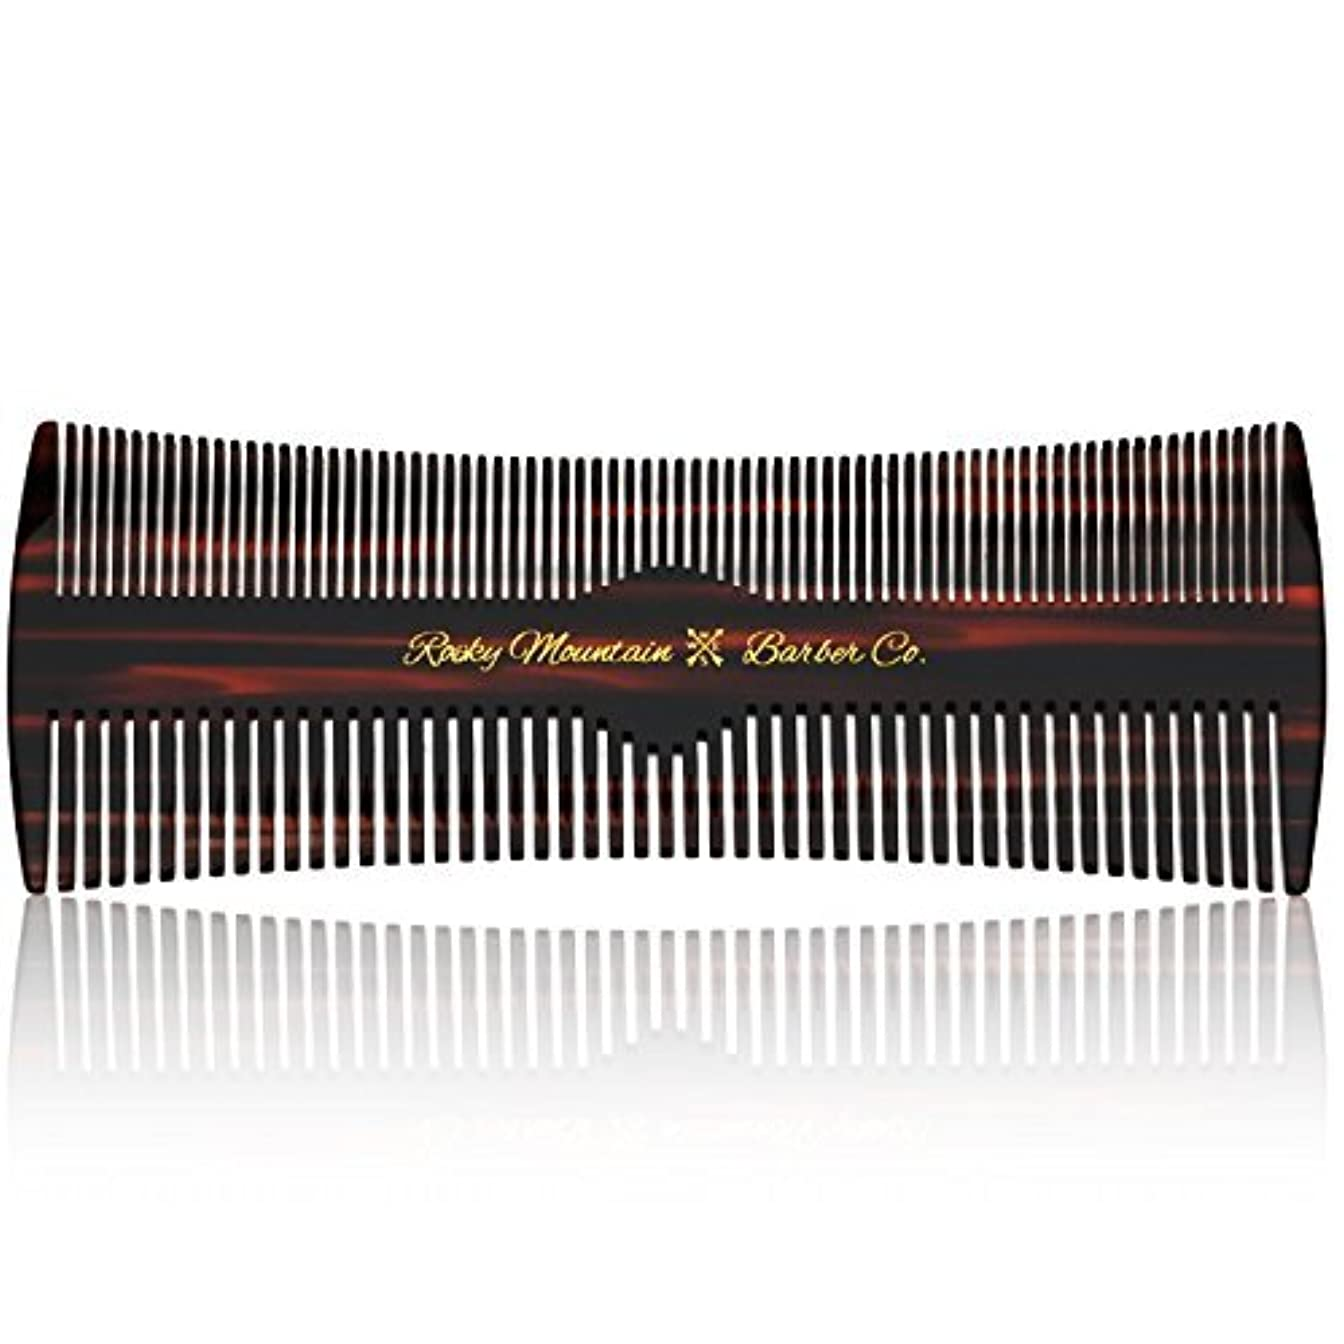 Hair Comb - Fine and Medium Tooth Comb for Head Hair, Beard, Mustache - Warp Resistant, No Snag Design with Contour...